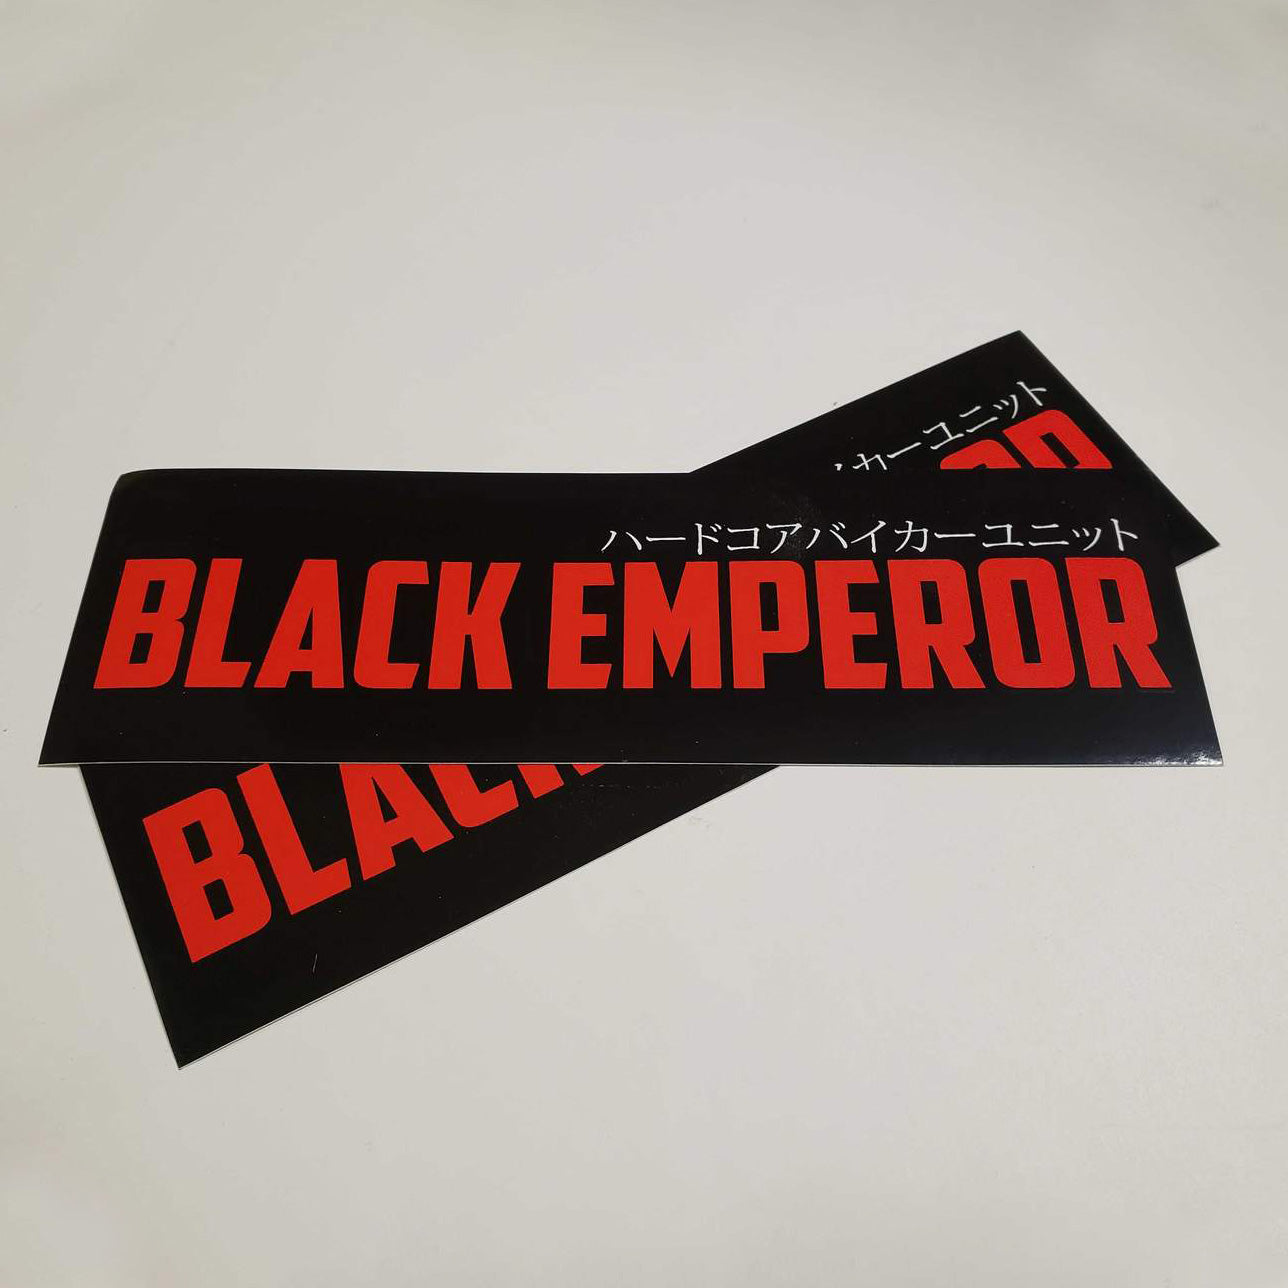 Black Emperor Sticker